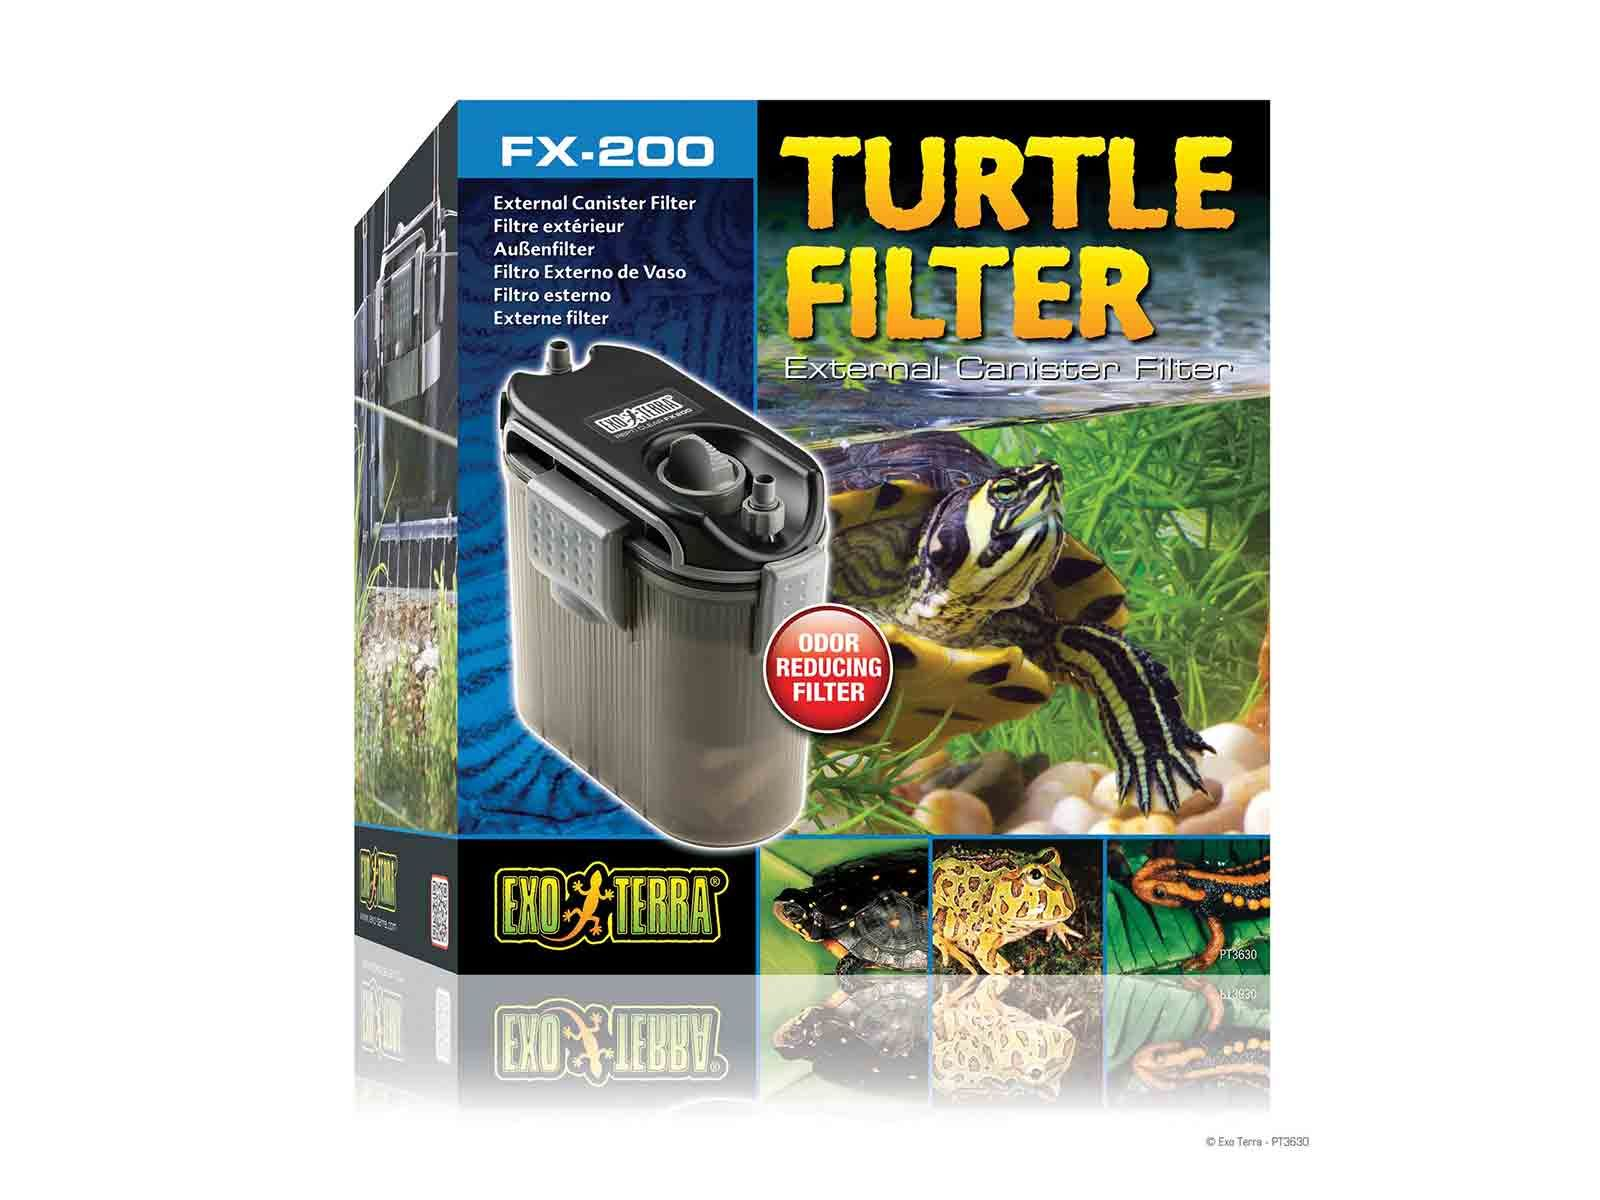 The exo terra turtle filter fx is designed for the special